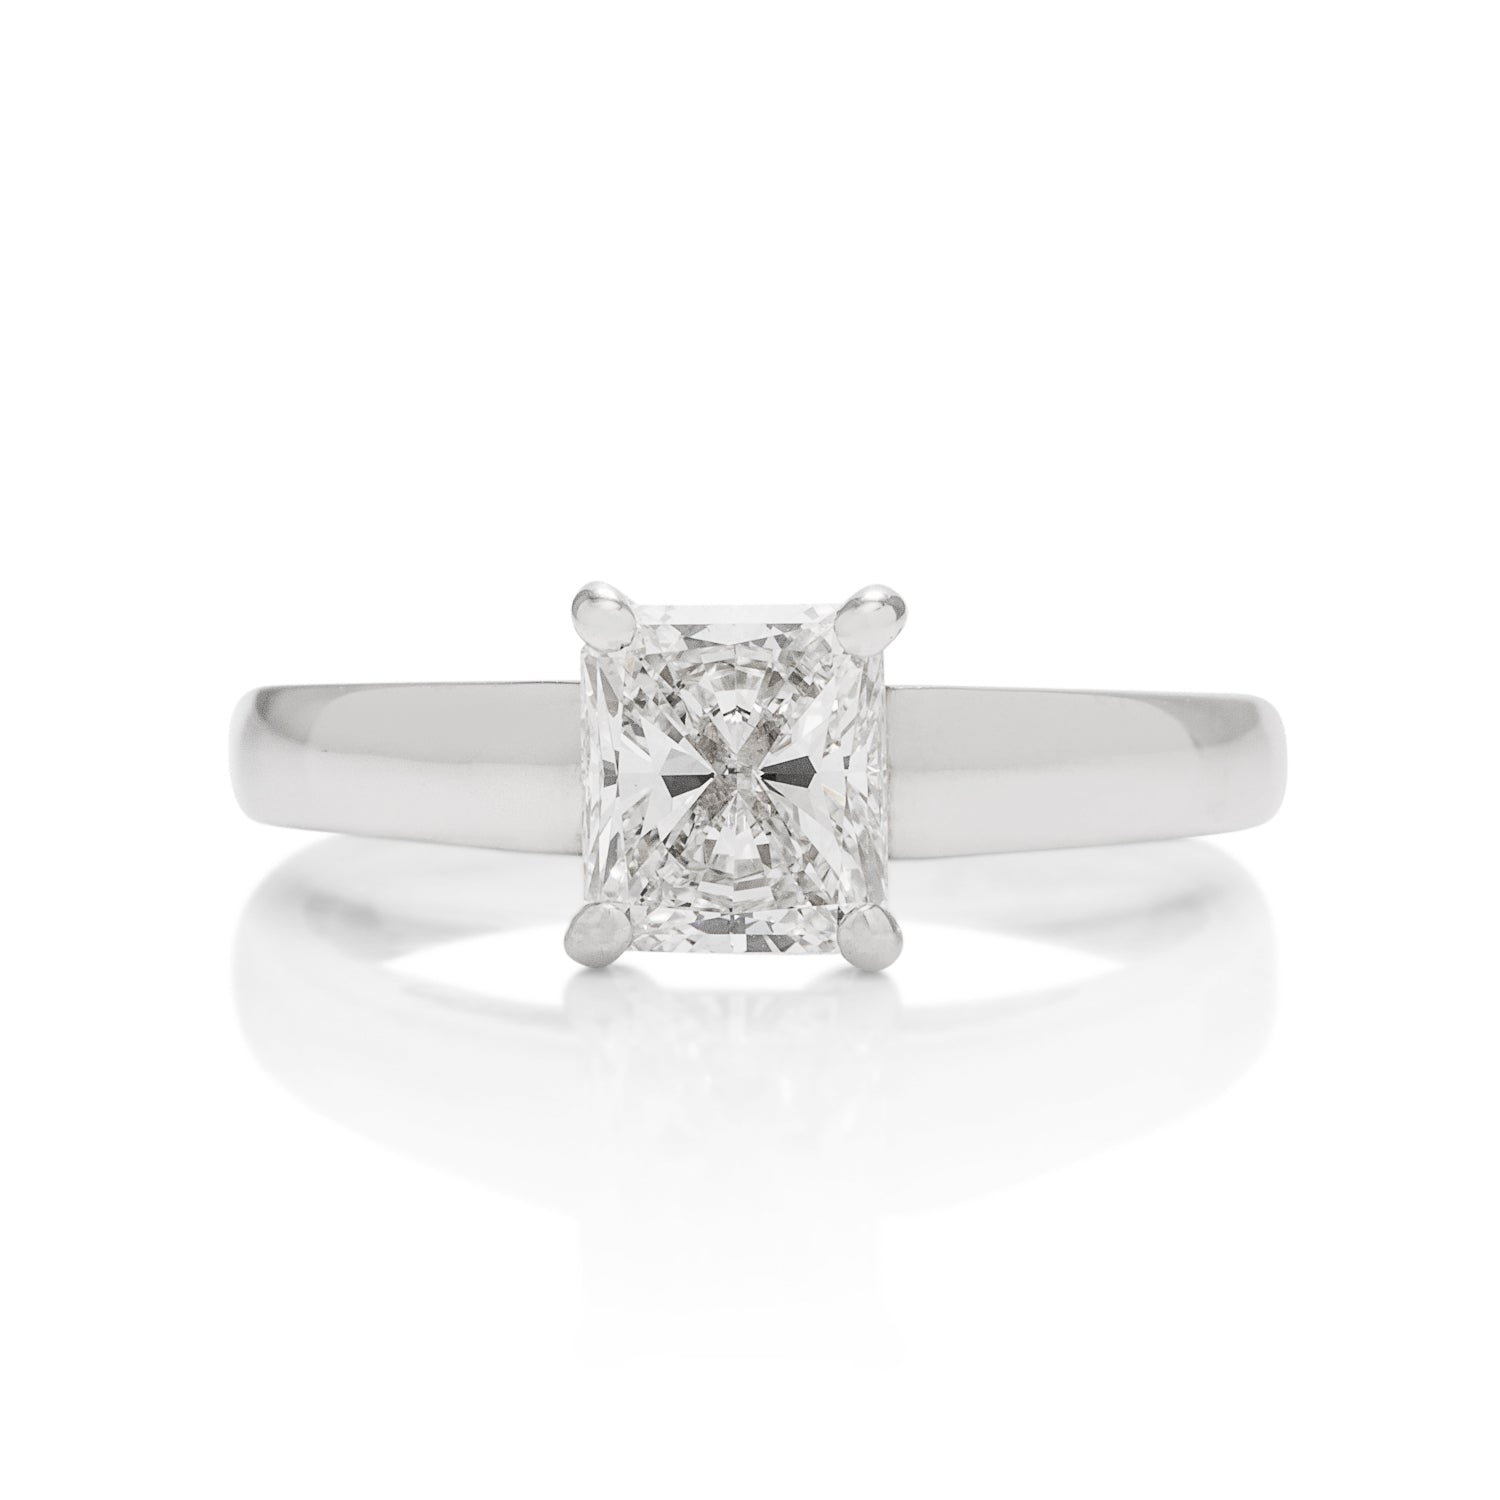 1.01 Carat Radiant Diamond White Gold Engagement Ring - Charles Koll Jewellers